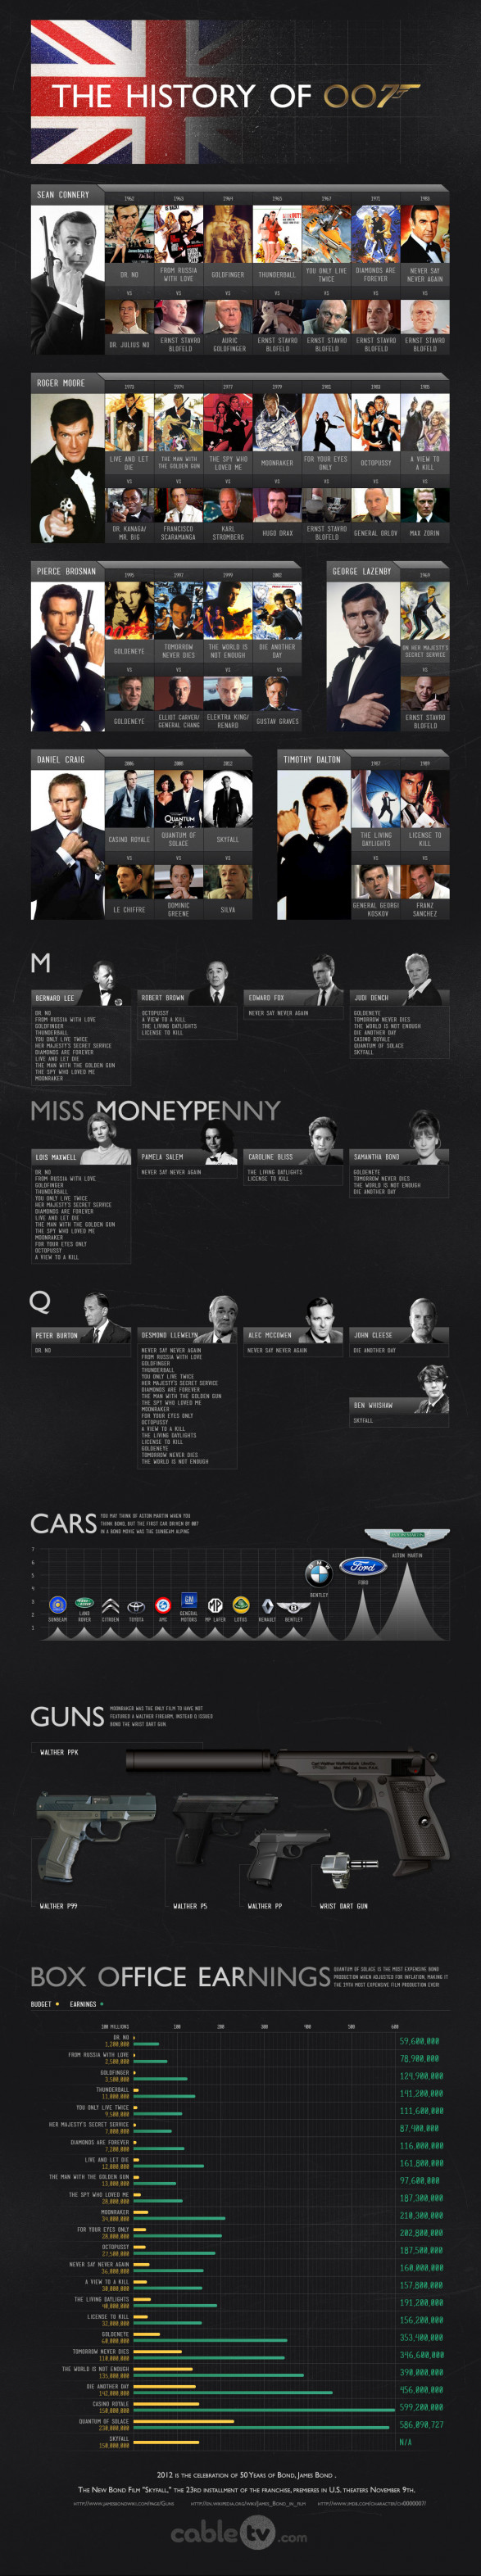 The History of 007